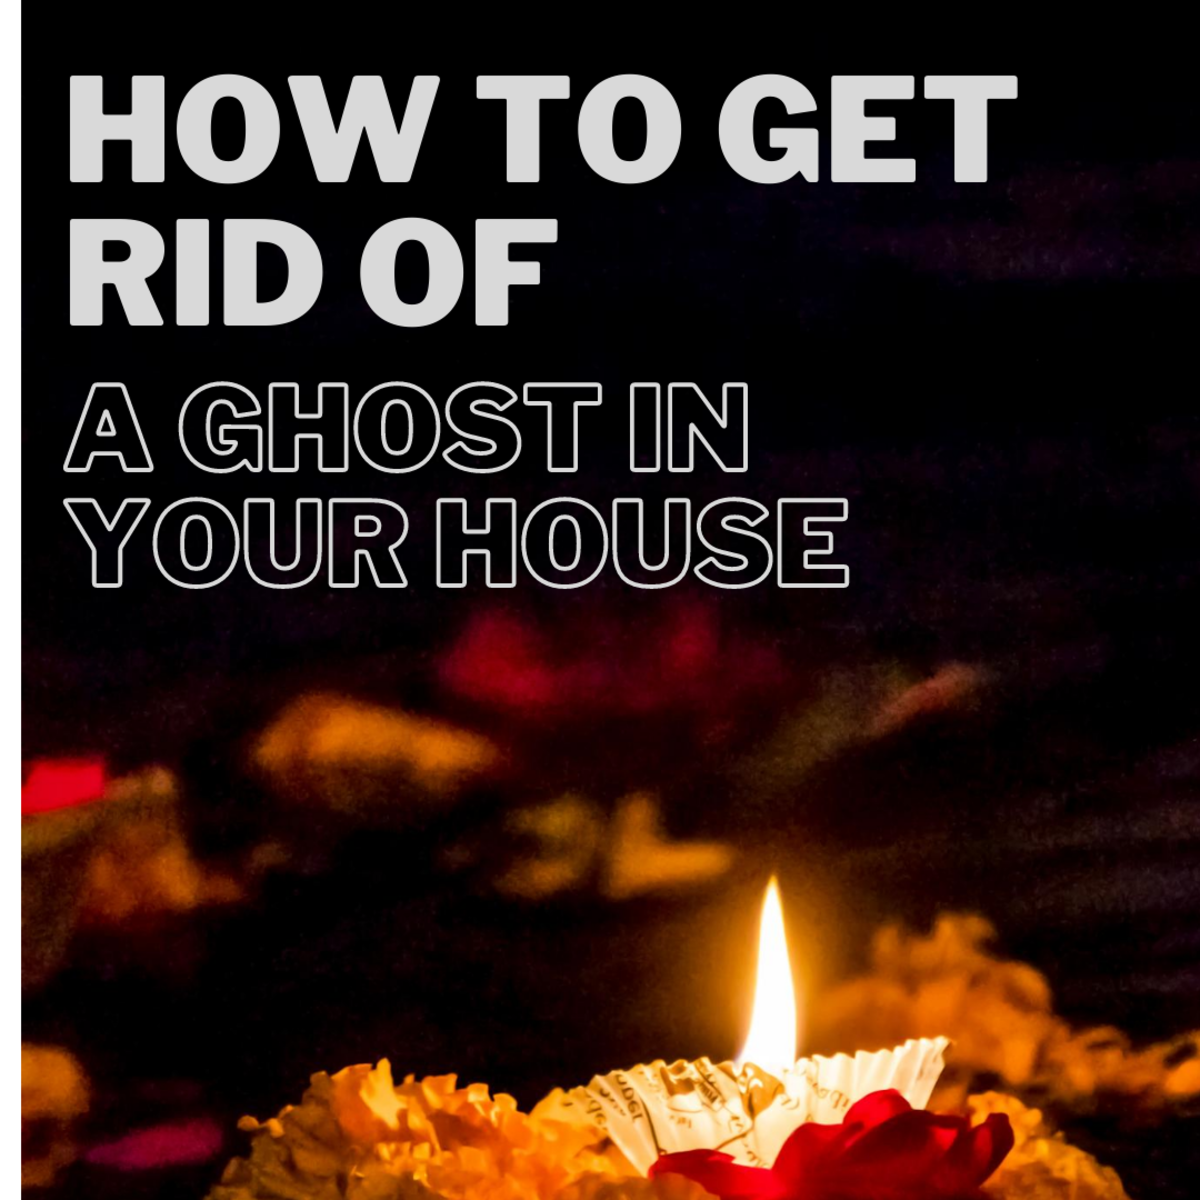 How to Get Rid of Ghosts or Spirits in Your House